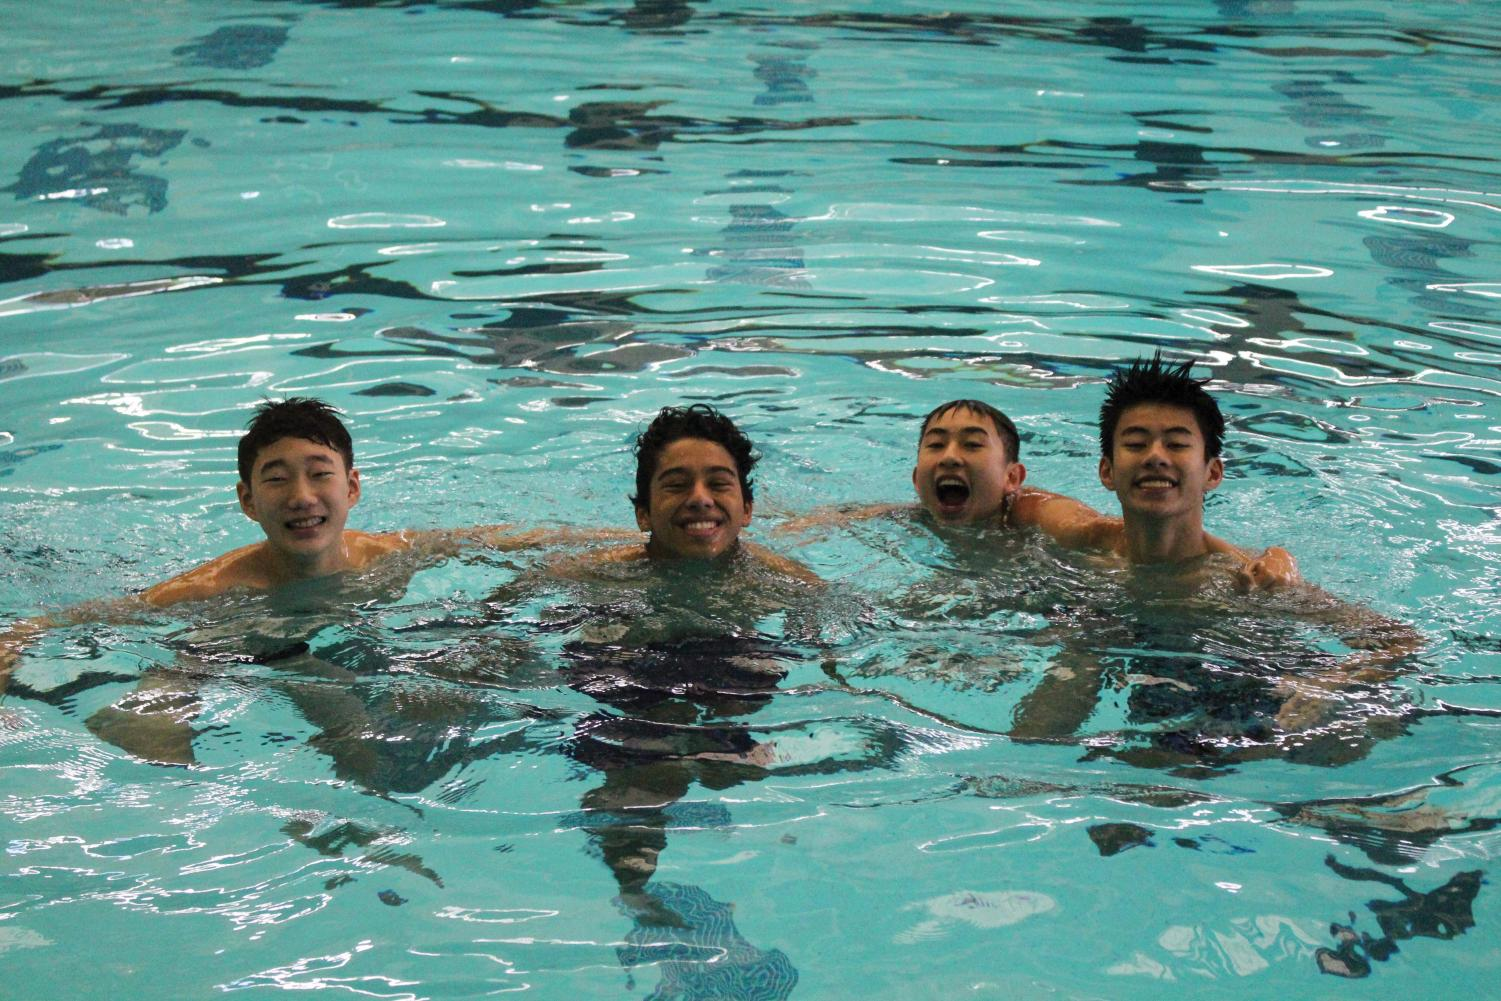 Last Sunday, 247 swimmers showed up to the Swimathon, setting a new record.